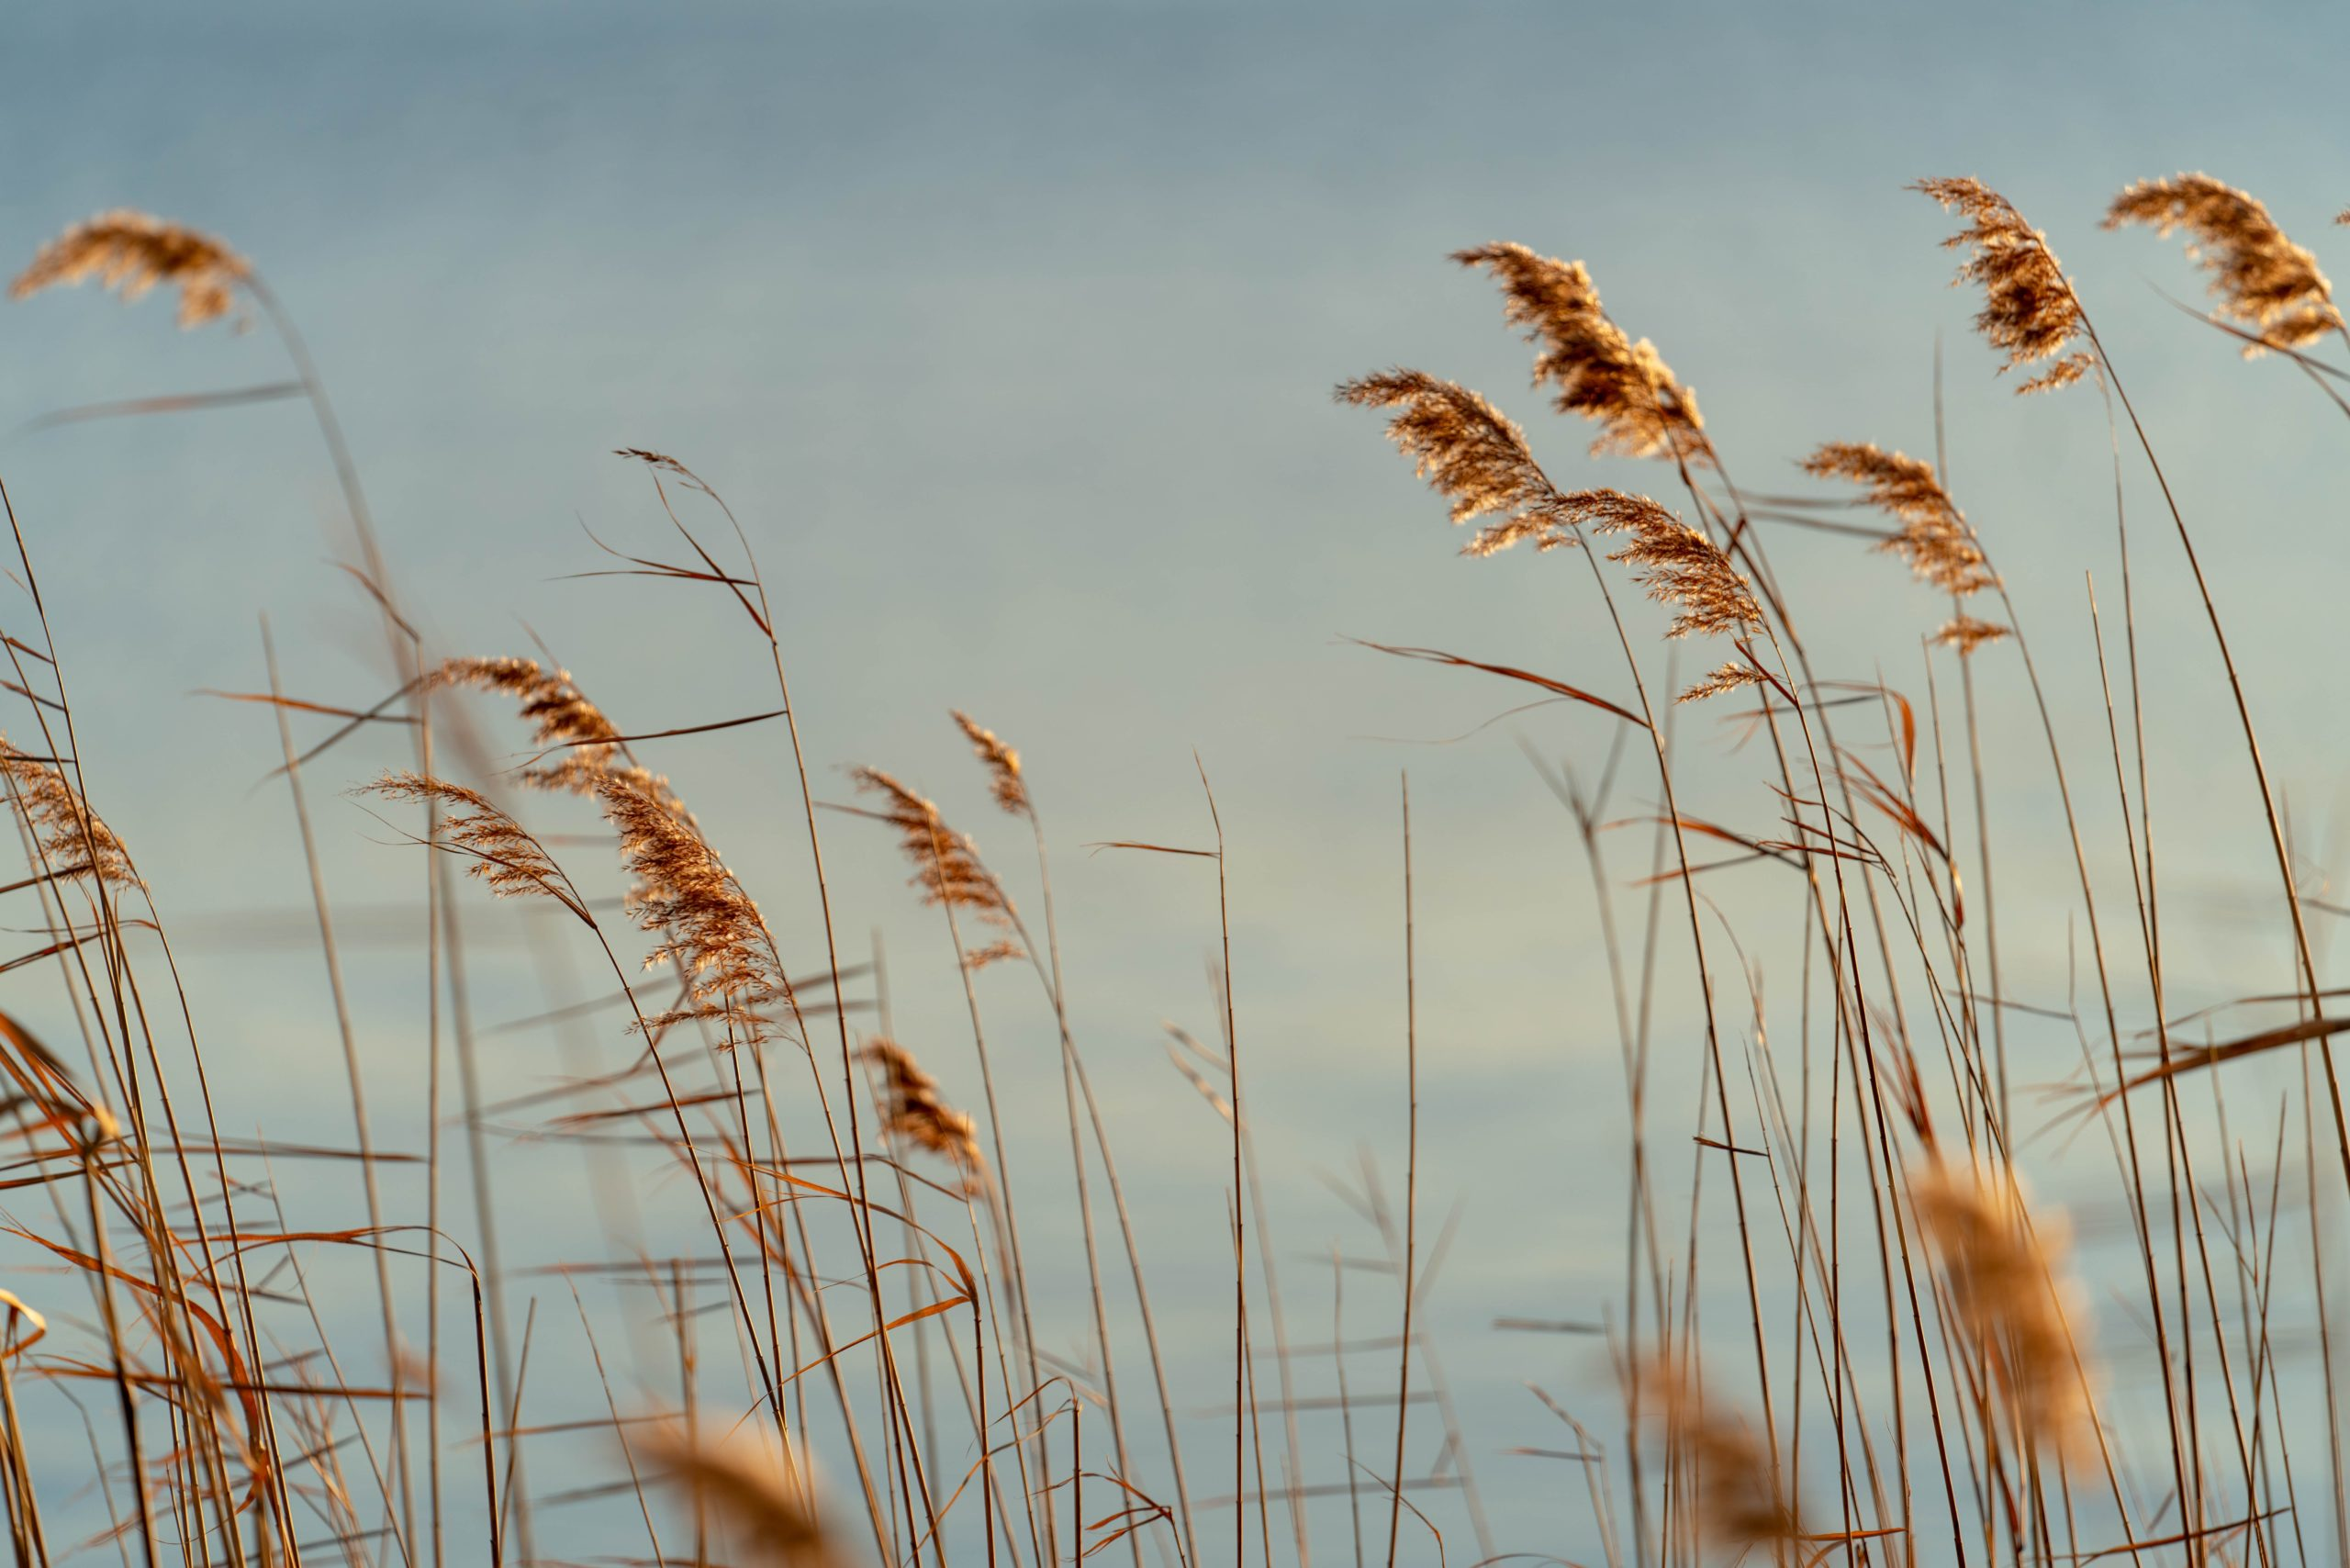 tall grasses under gray sky during daytime